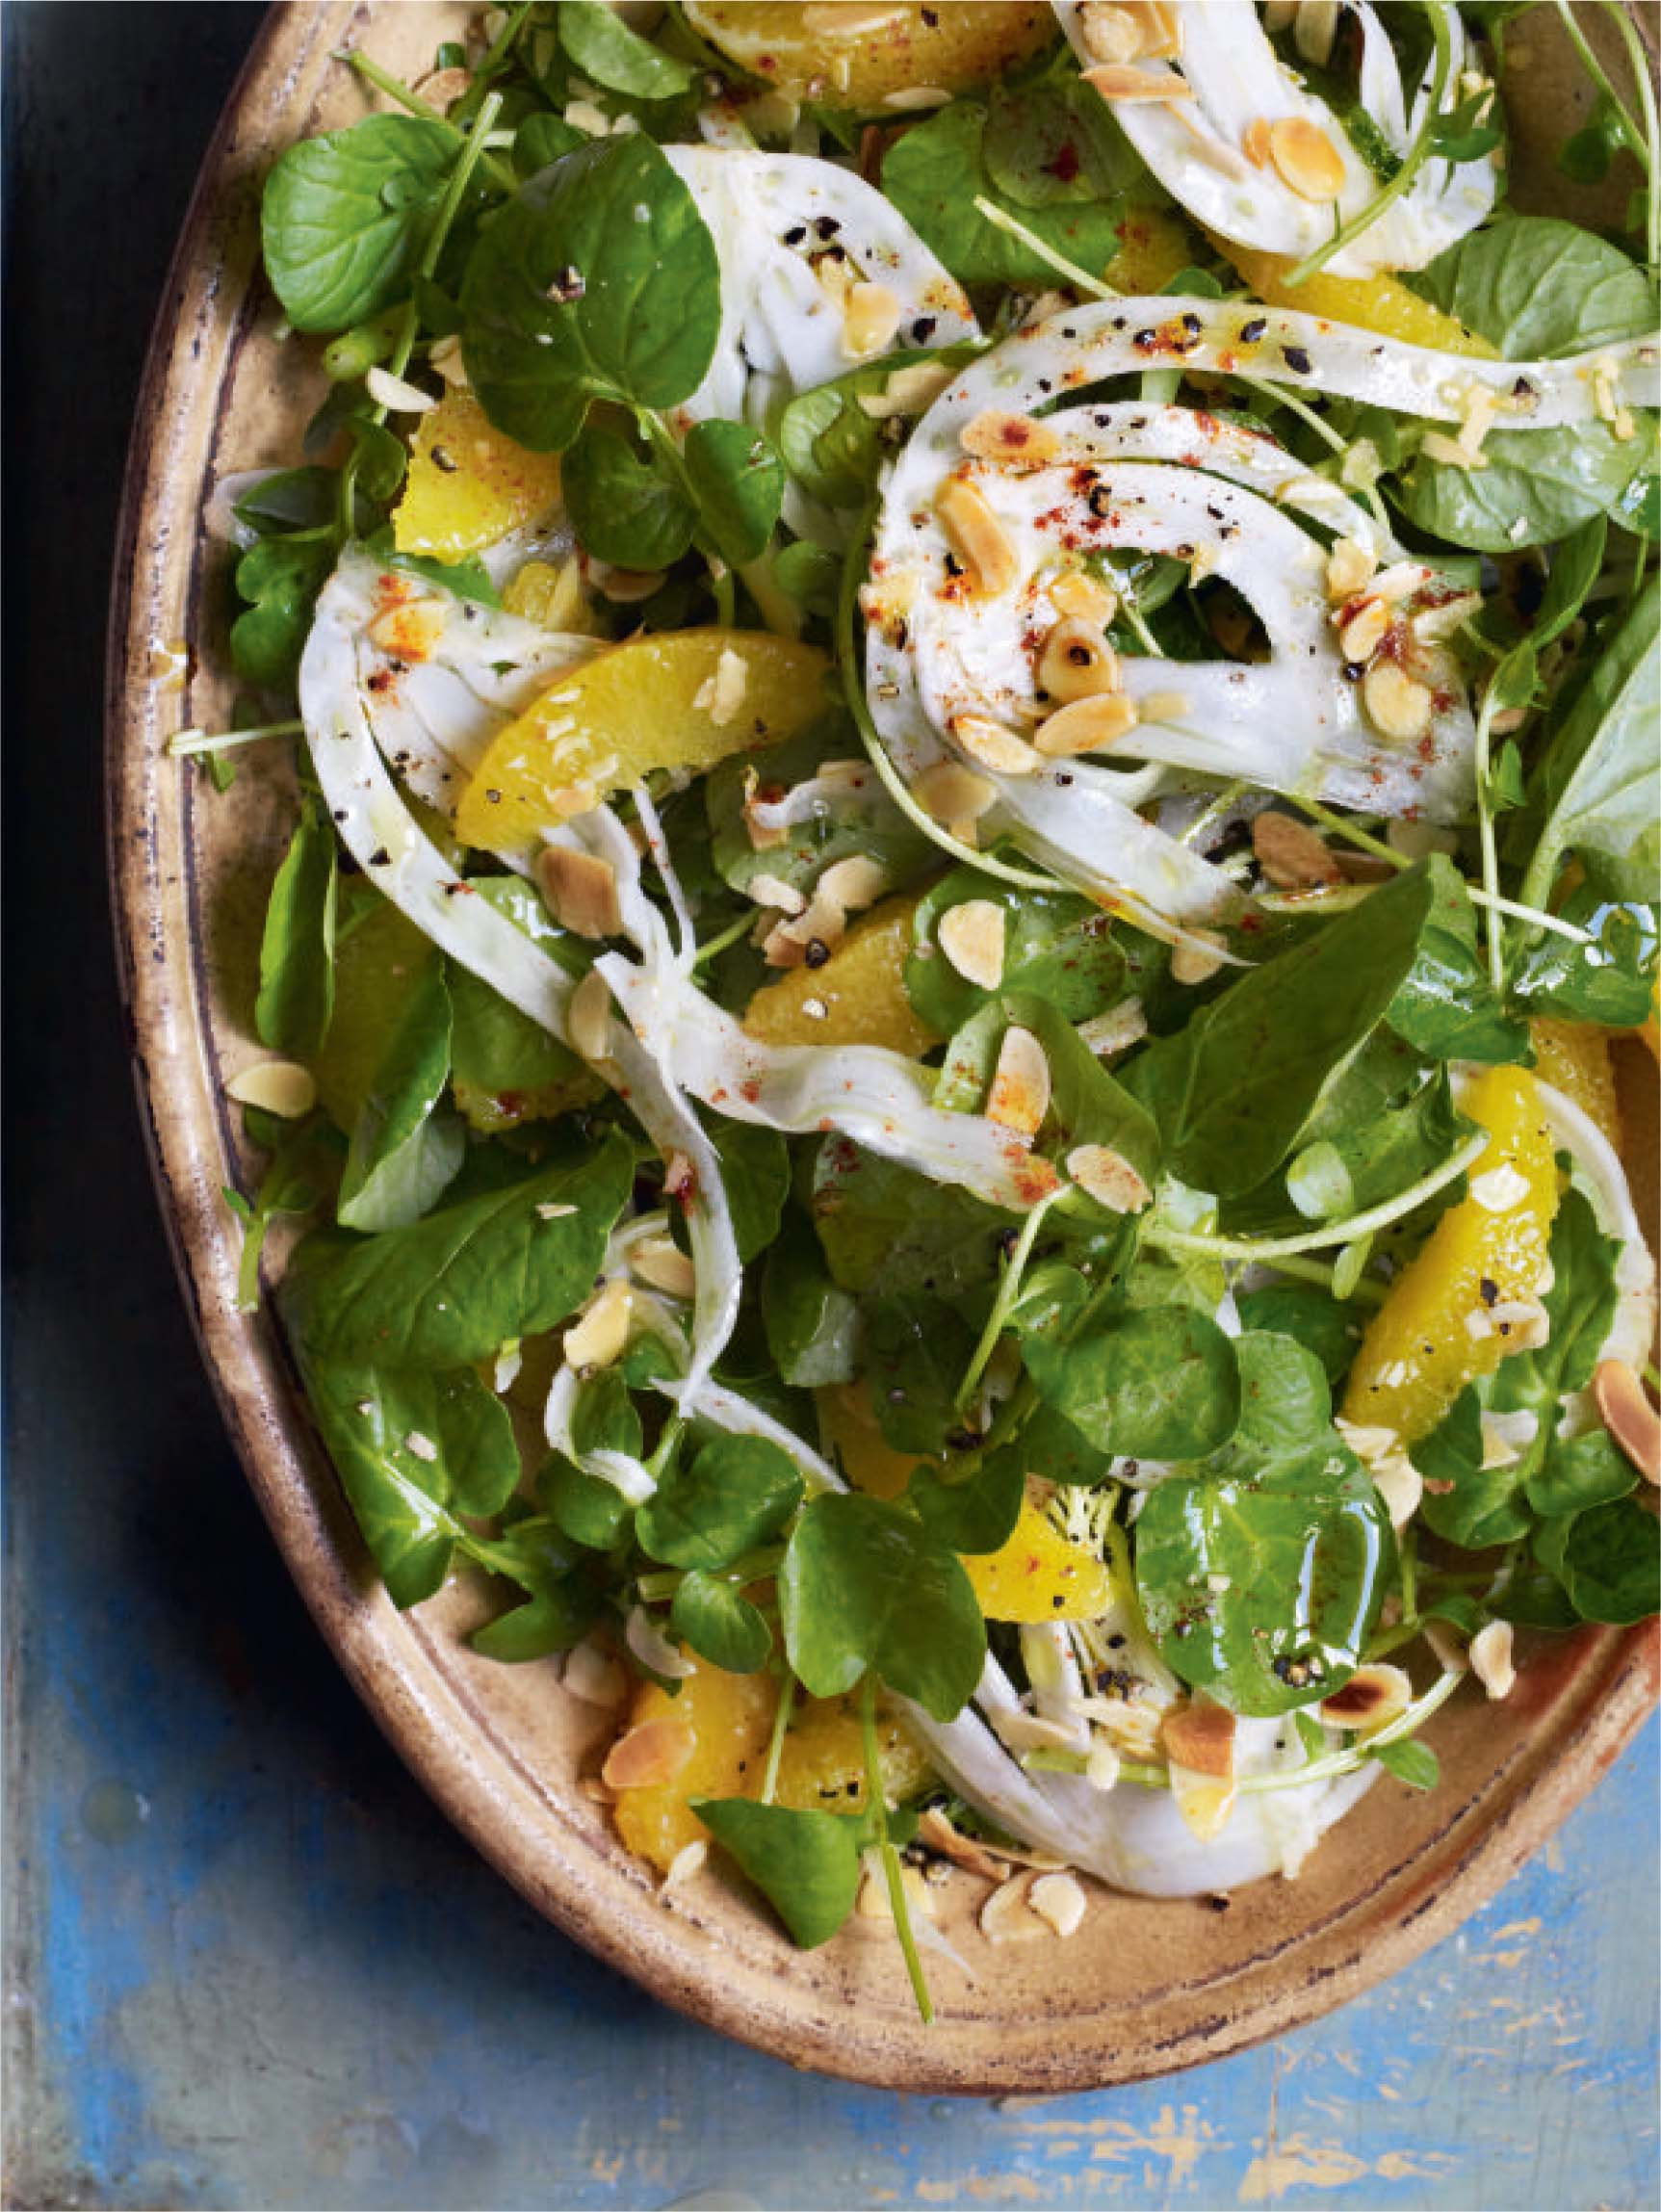 Watercress salad with fennel and orange